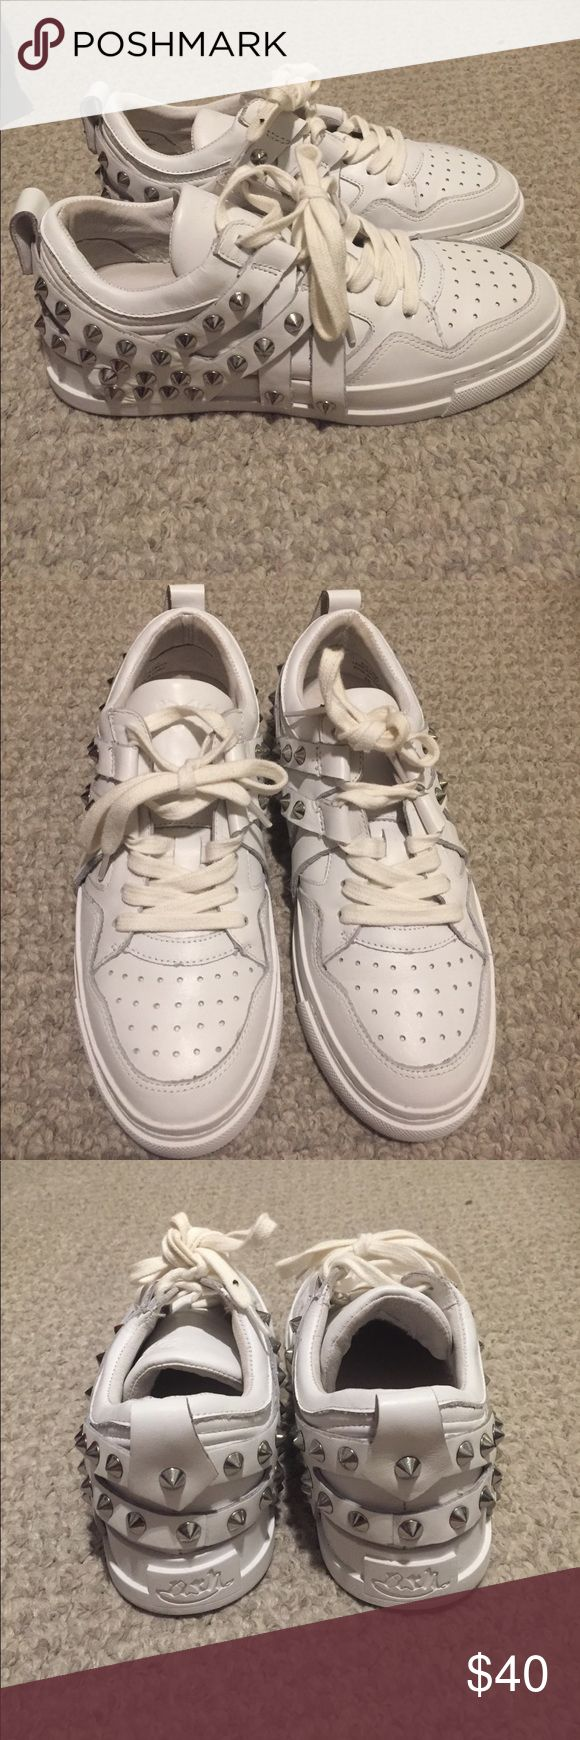 Ash sneakers Worn once in great condition bought at Bloomingdales Ash Shoes Sneakers